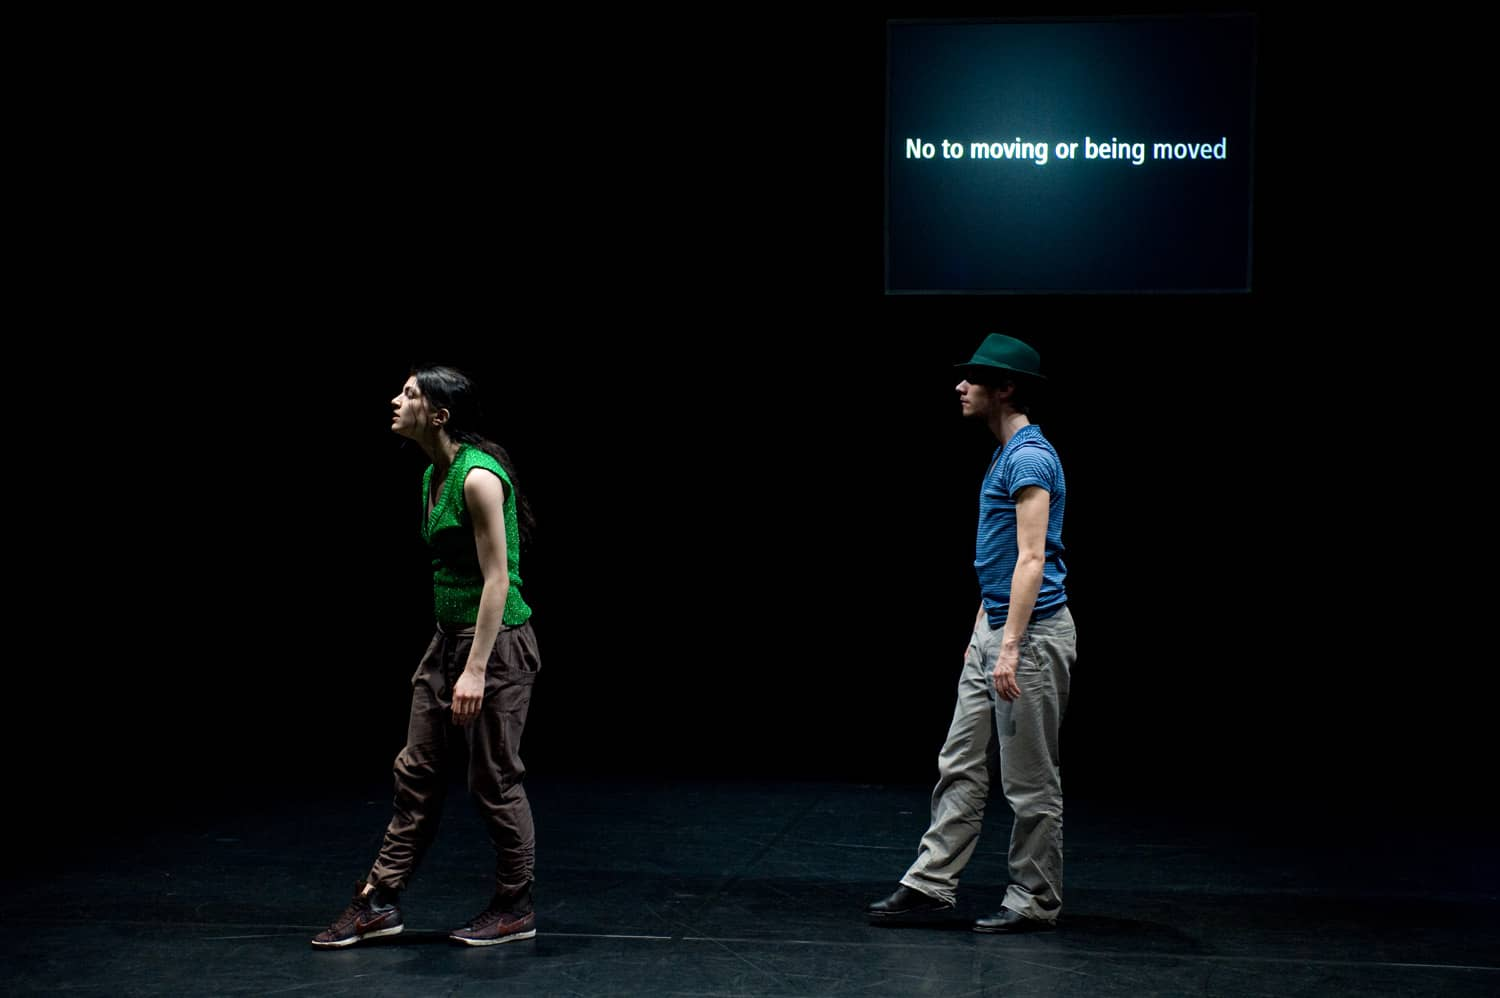 After Trio A by Andrea Bozic in collaboration with Julia Willms